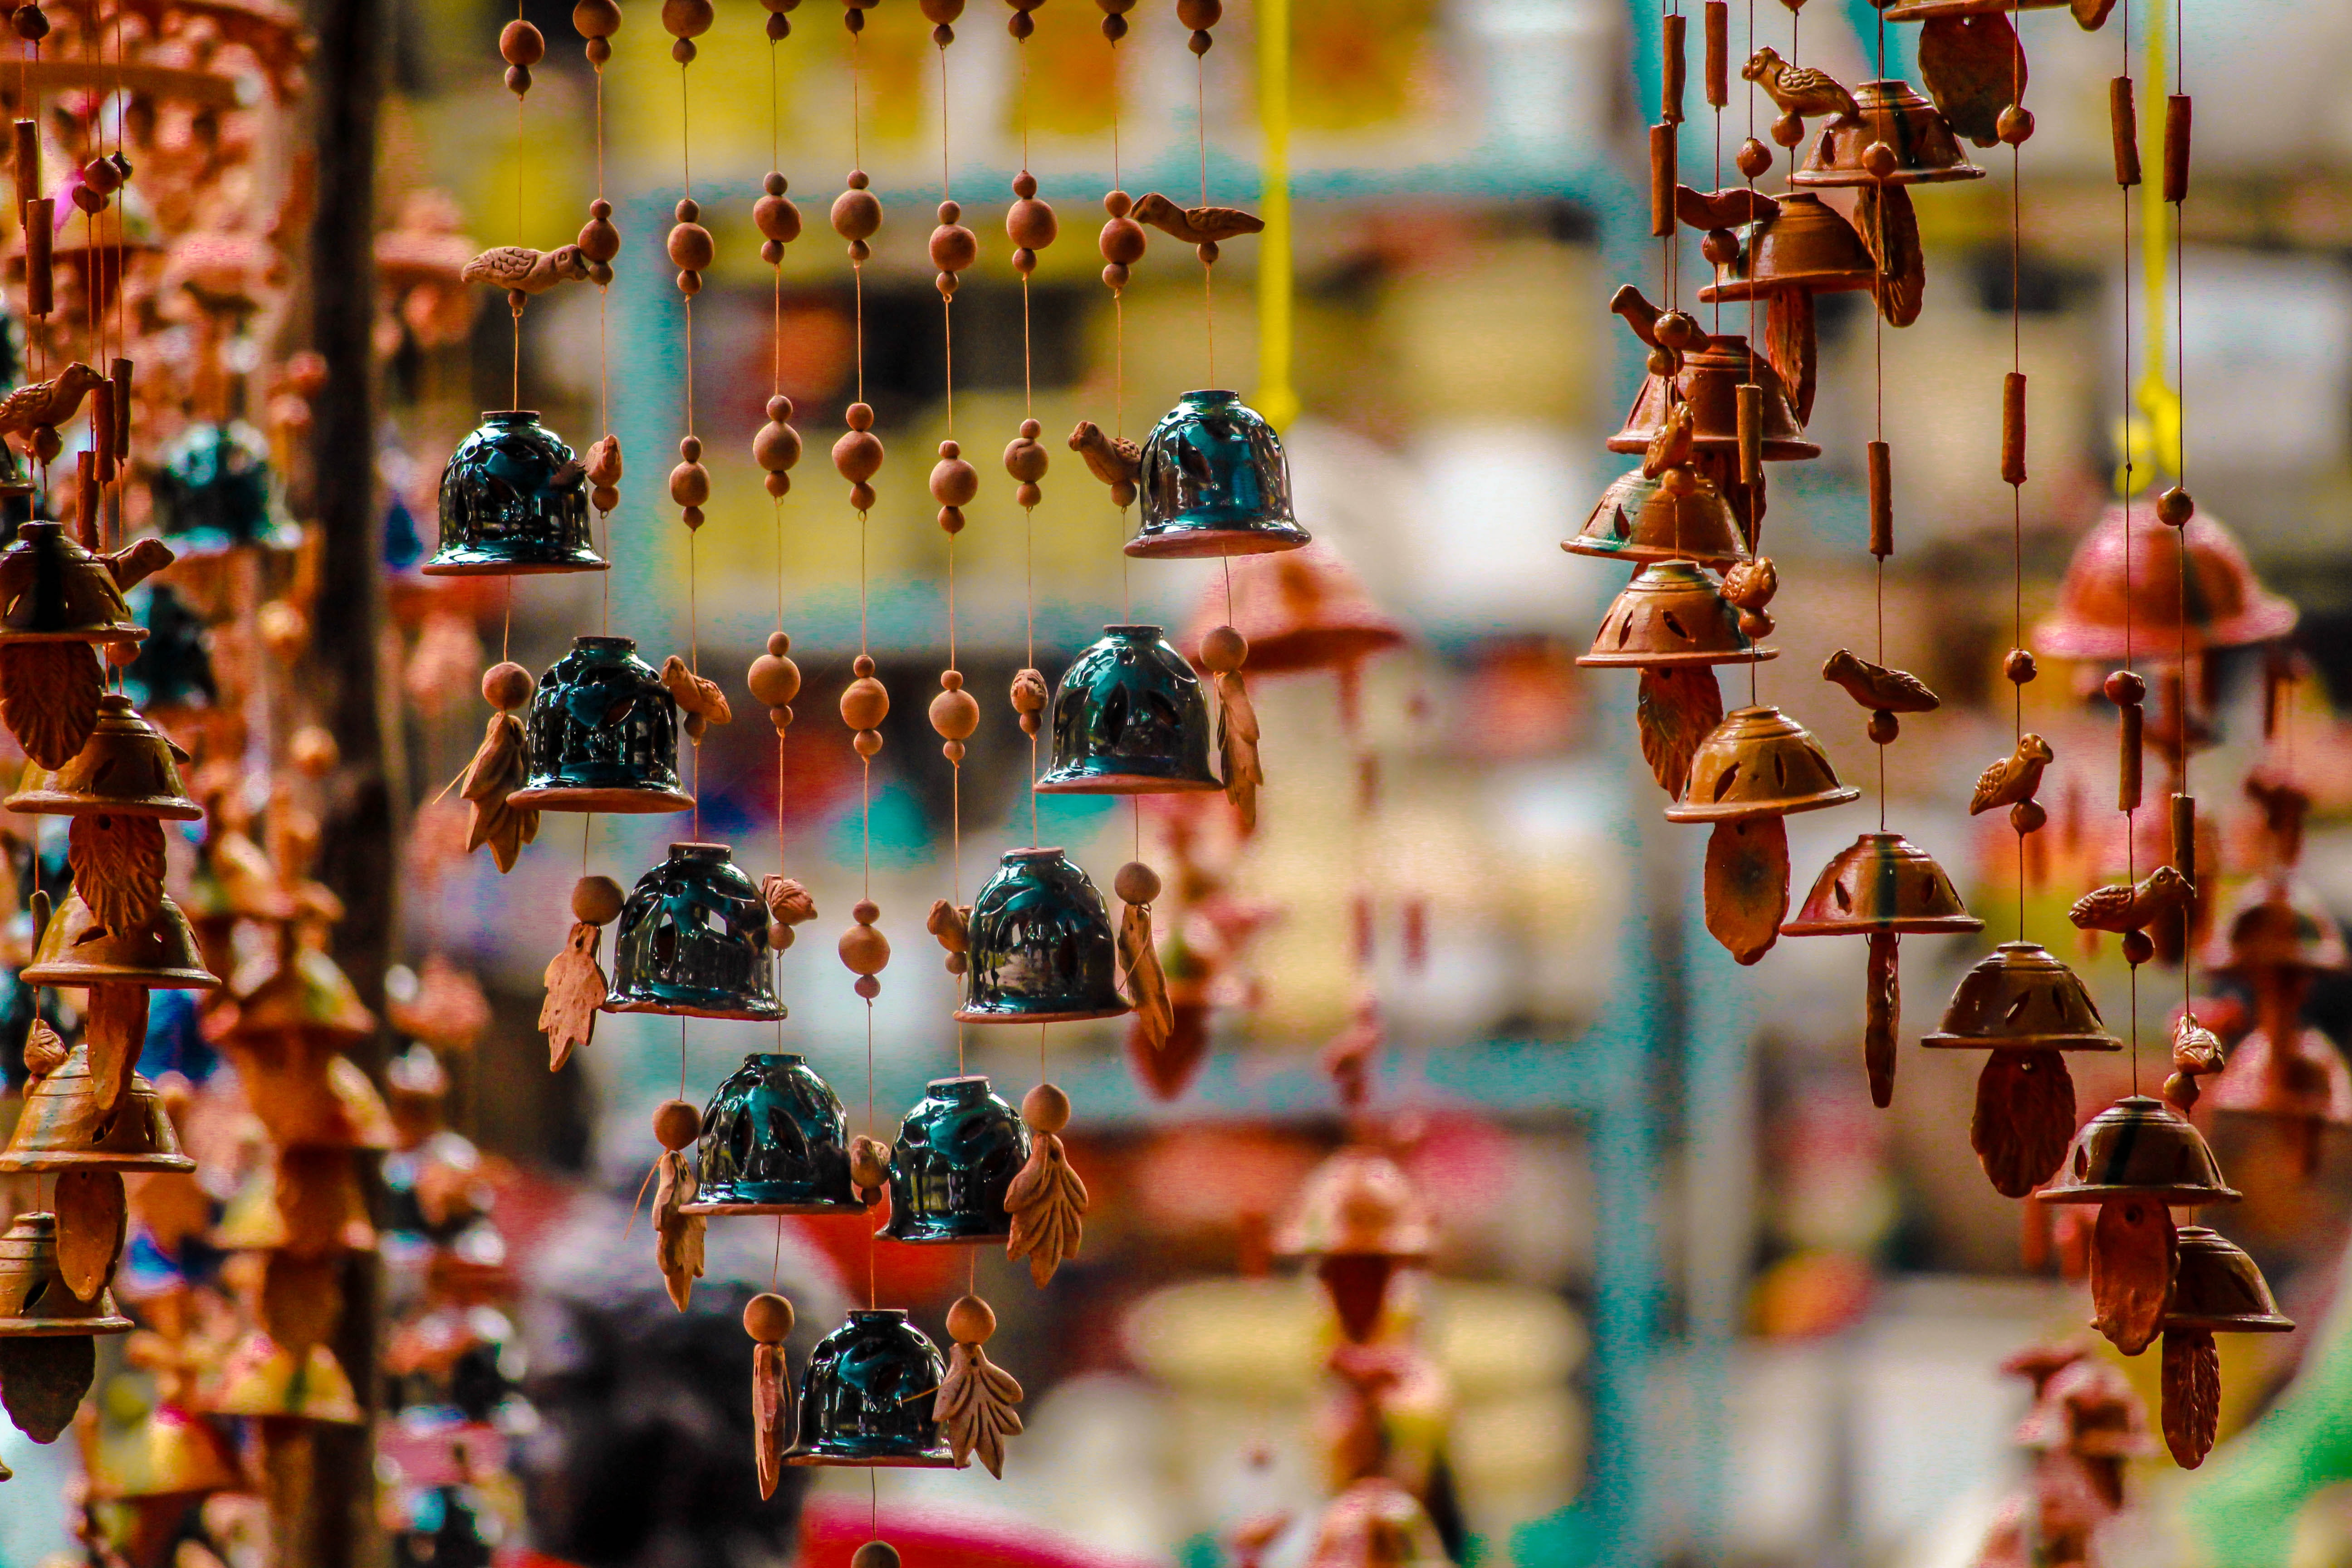 Ornaments Hanging for Sale in Market, Art, Decorative, Travel, Transaction, HQ Photo